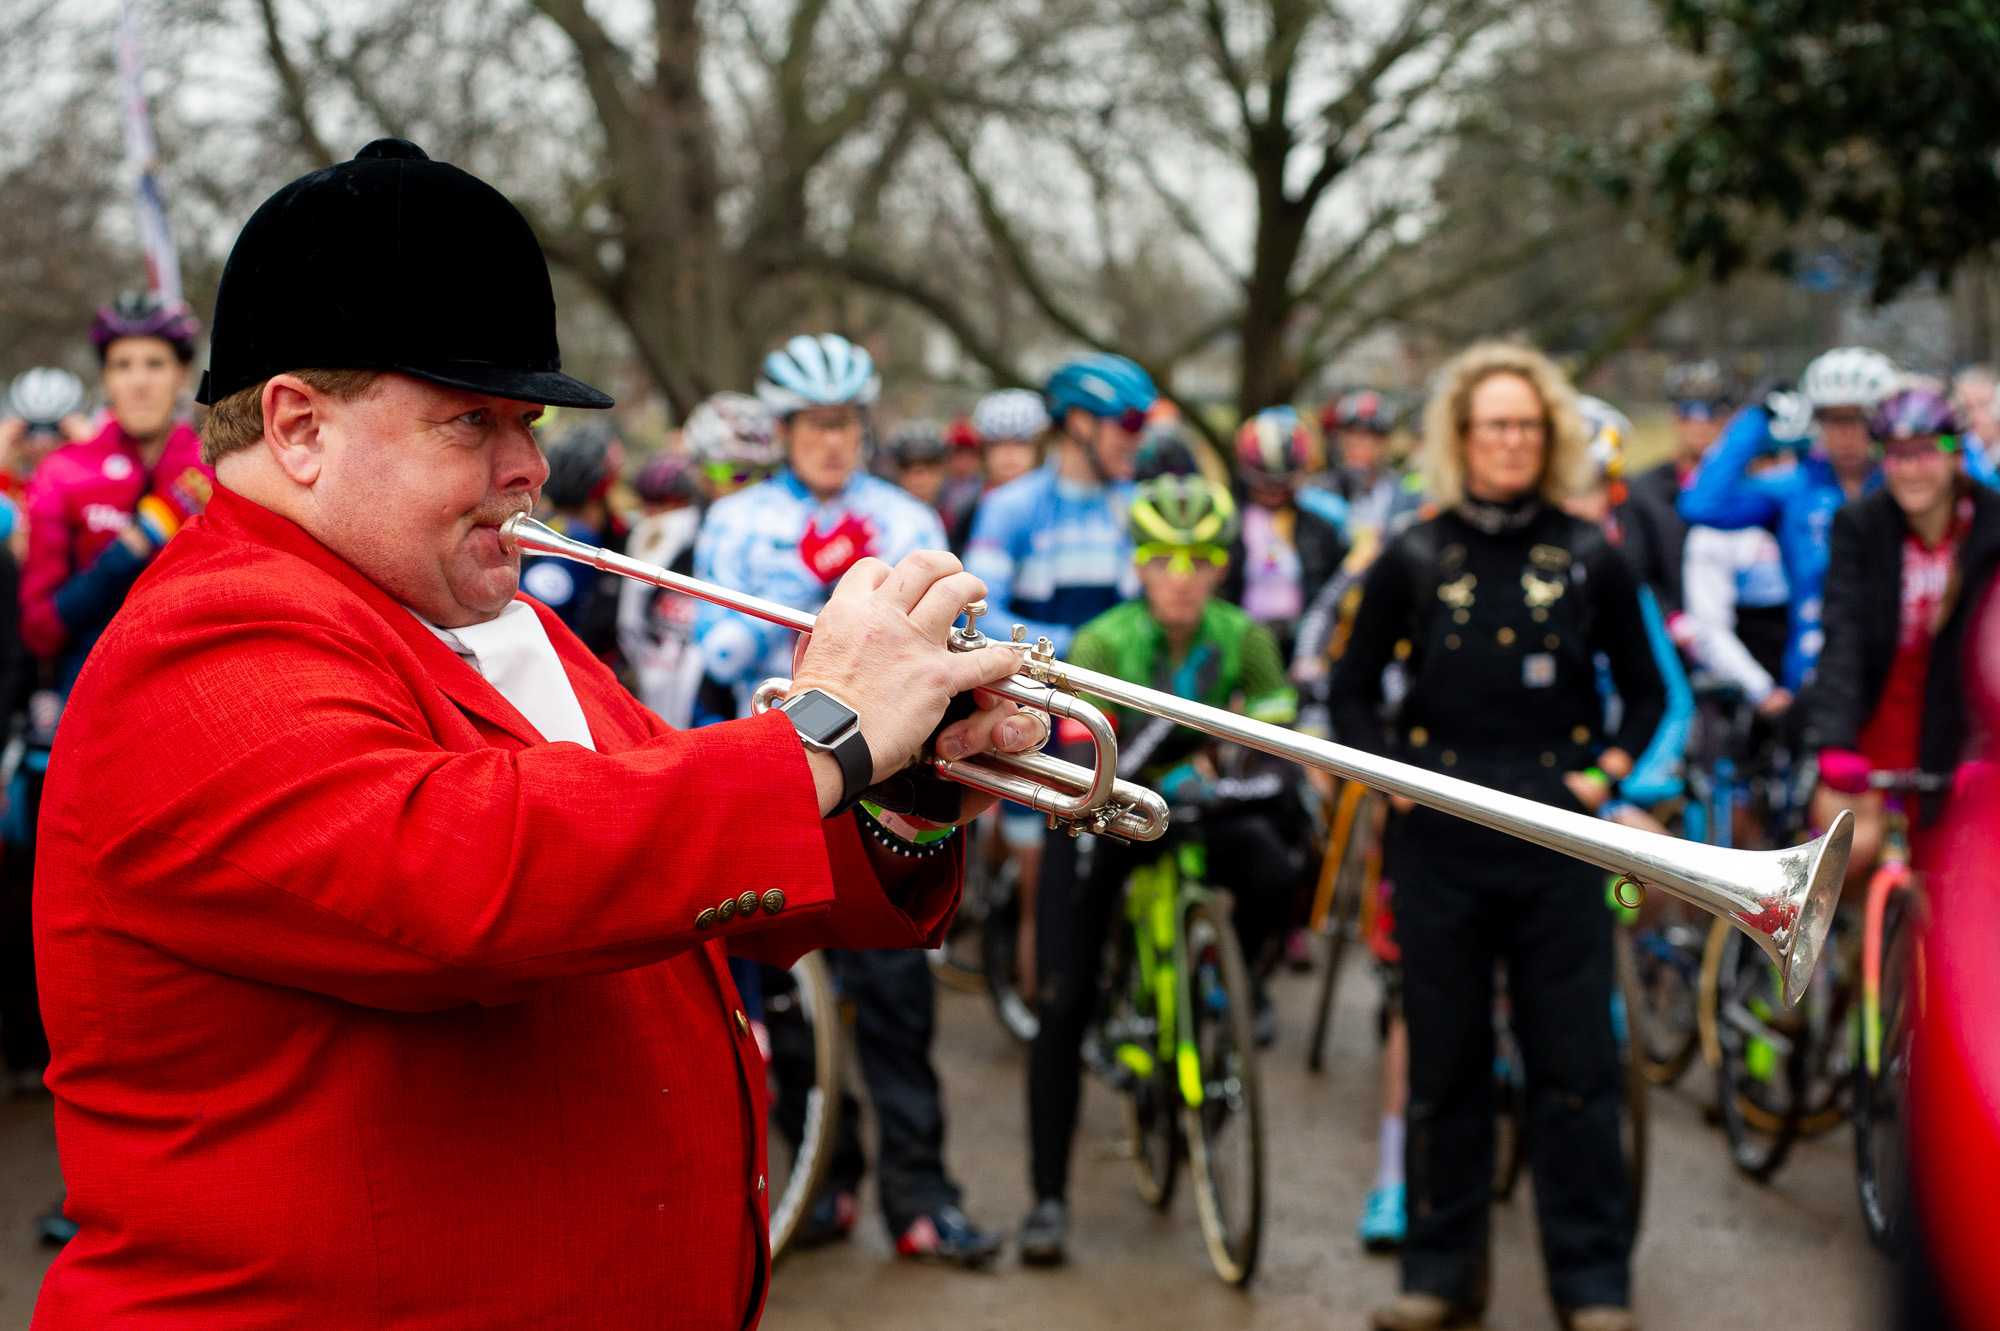 Steve Buttleman, bugler at over 60,000 horse races and two bike races